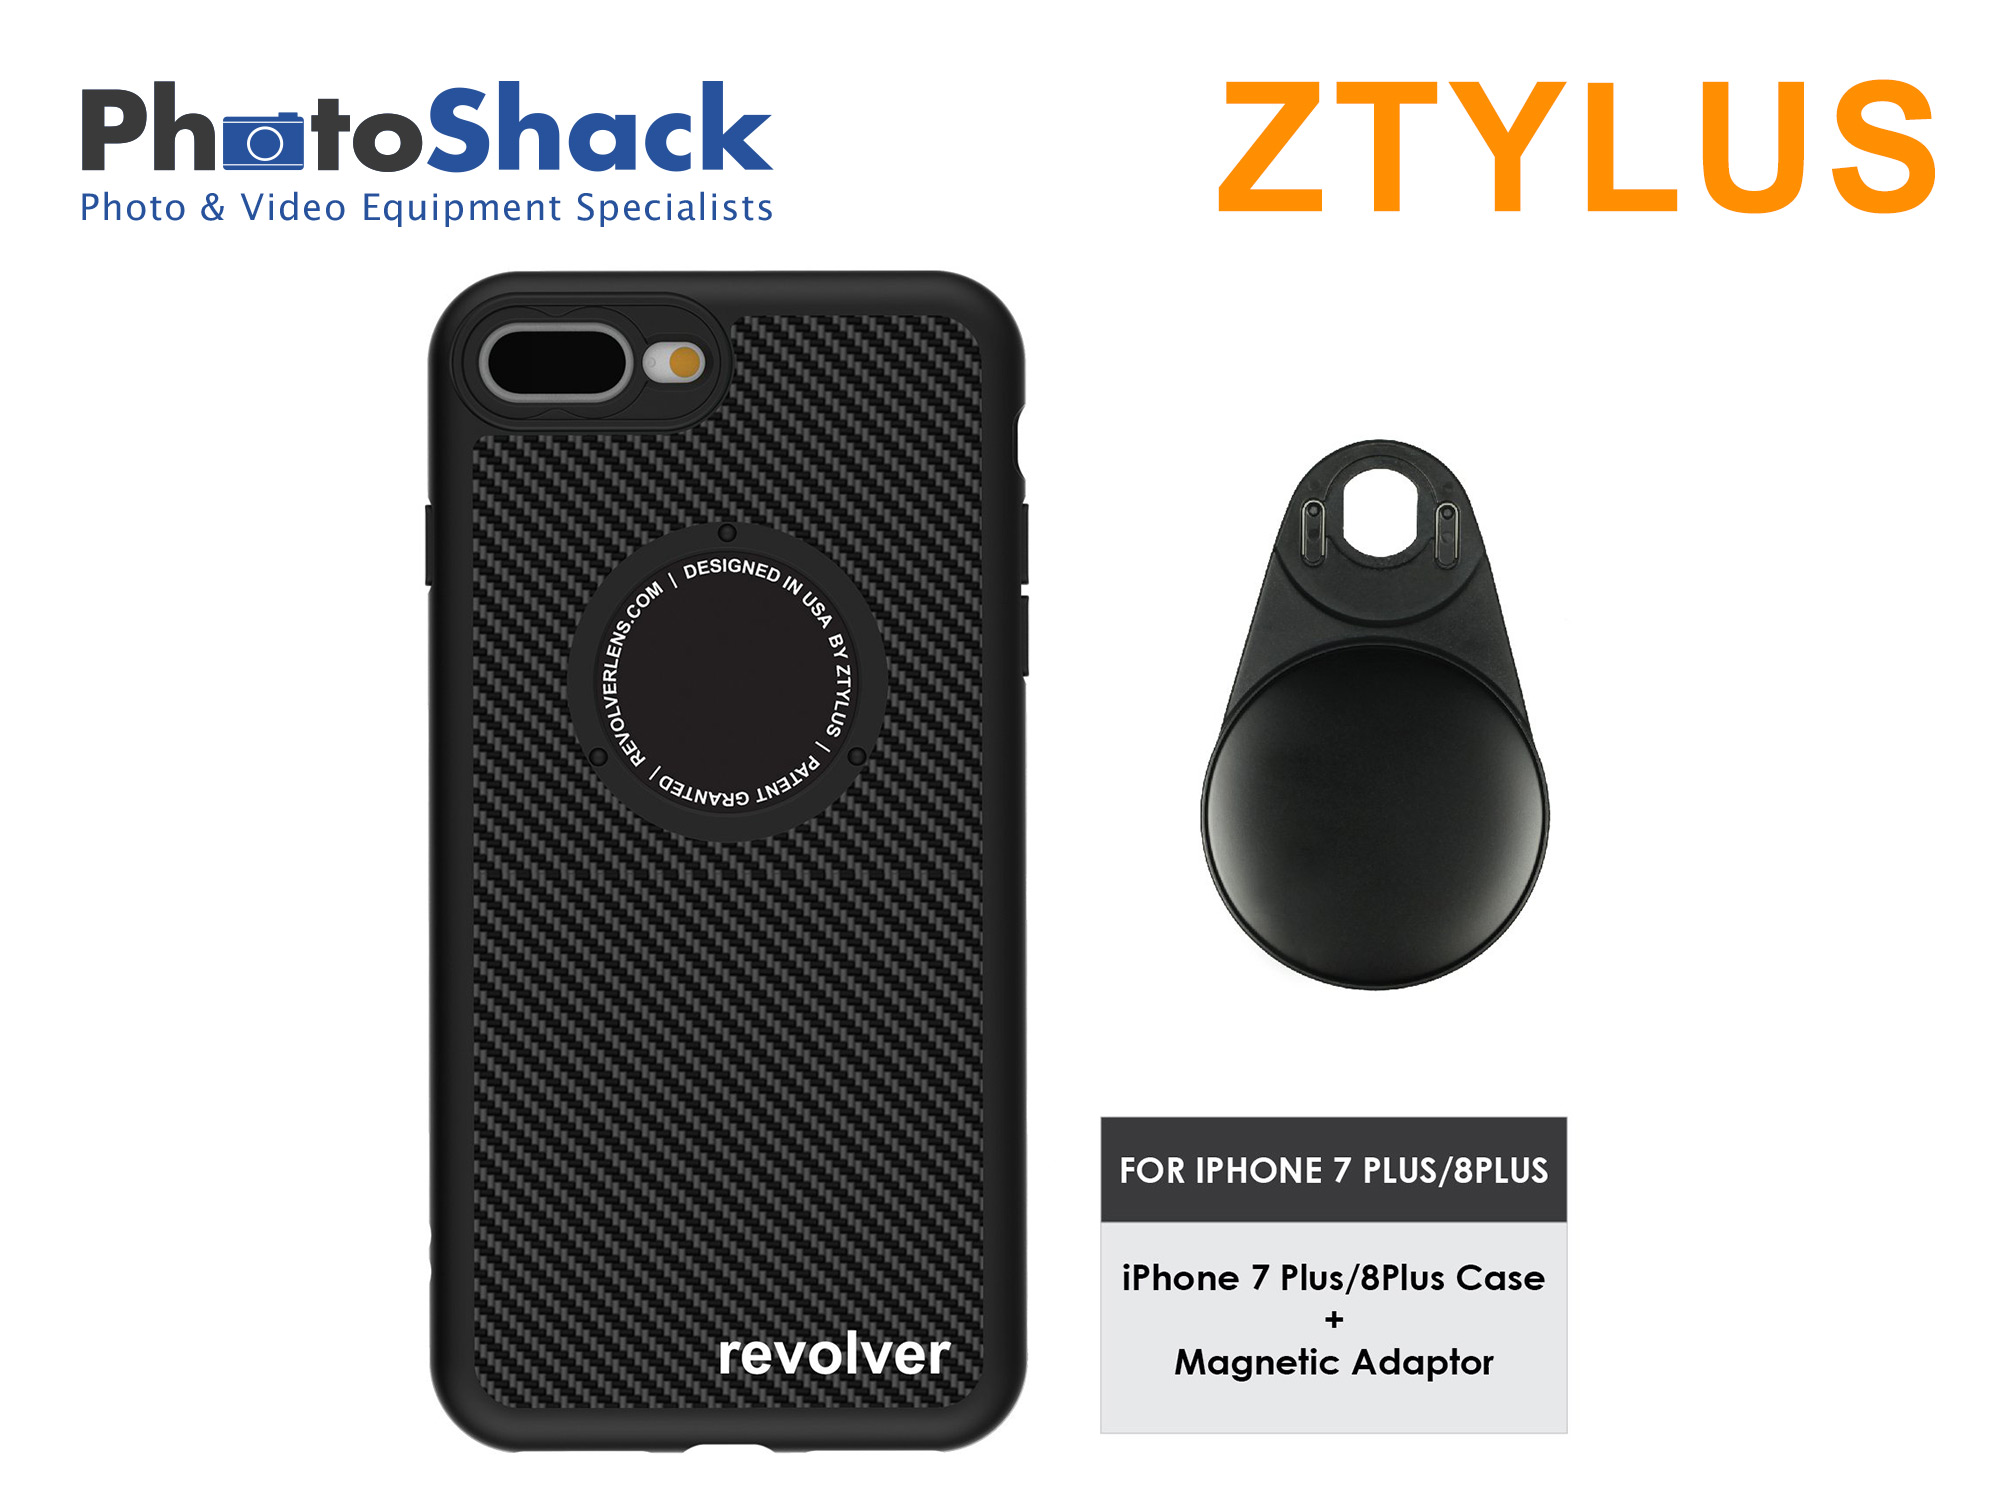 Ztylus iPhone Case (carbon fiber) for iPhone 7+ 7P / 8+ 8P and Magnetic Adapter